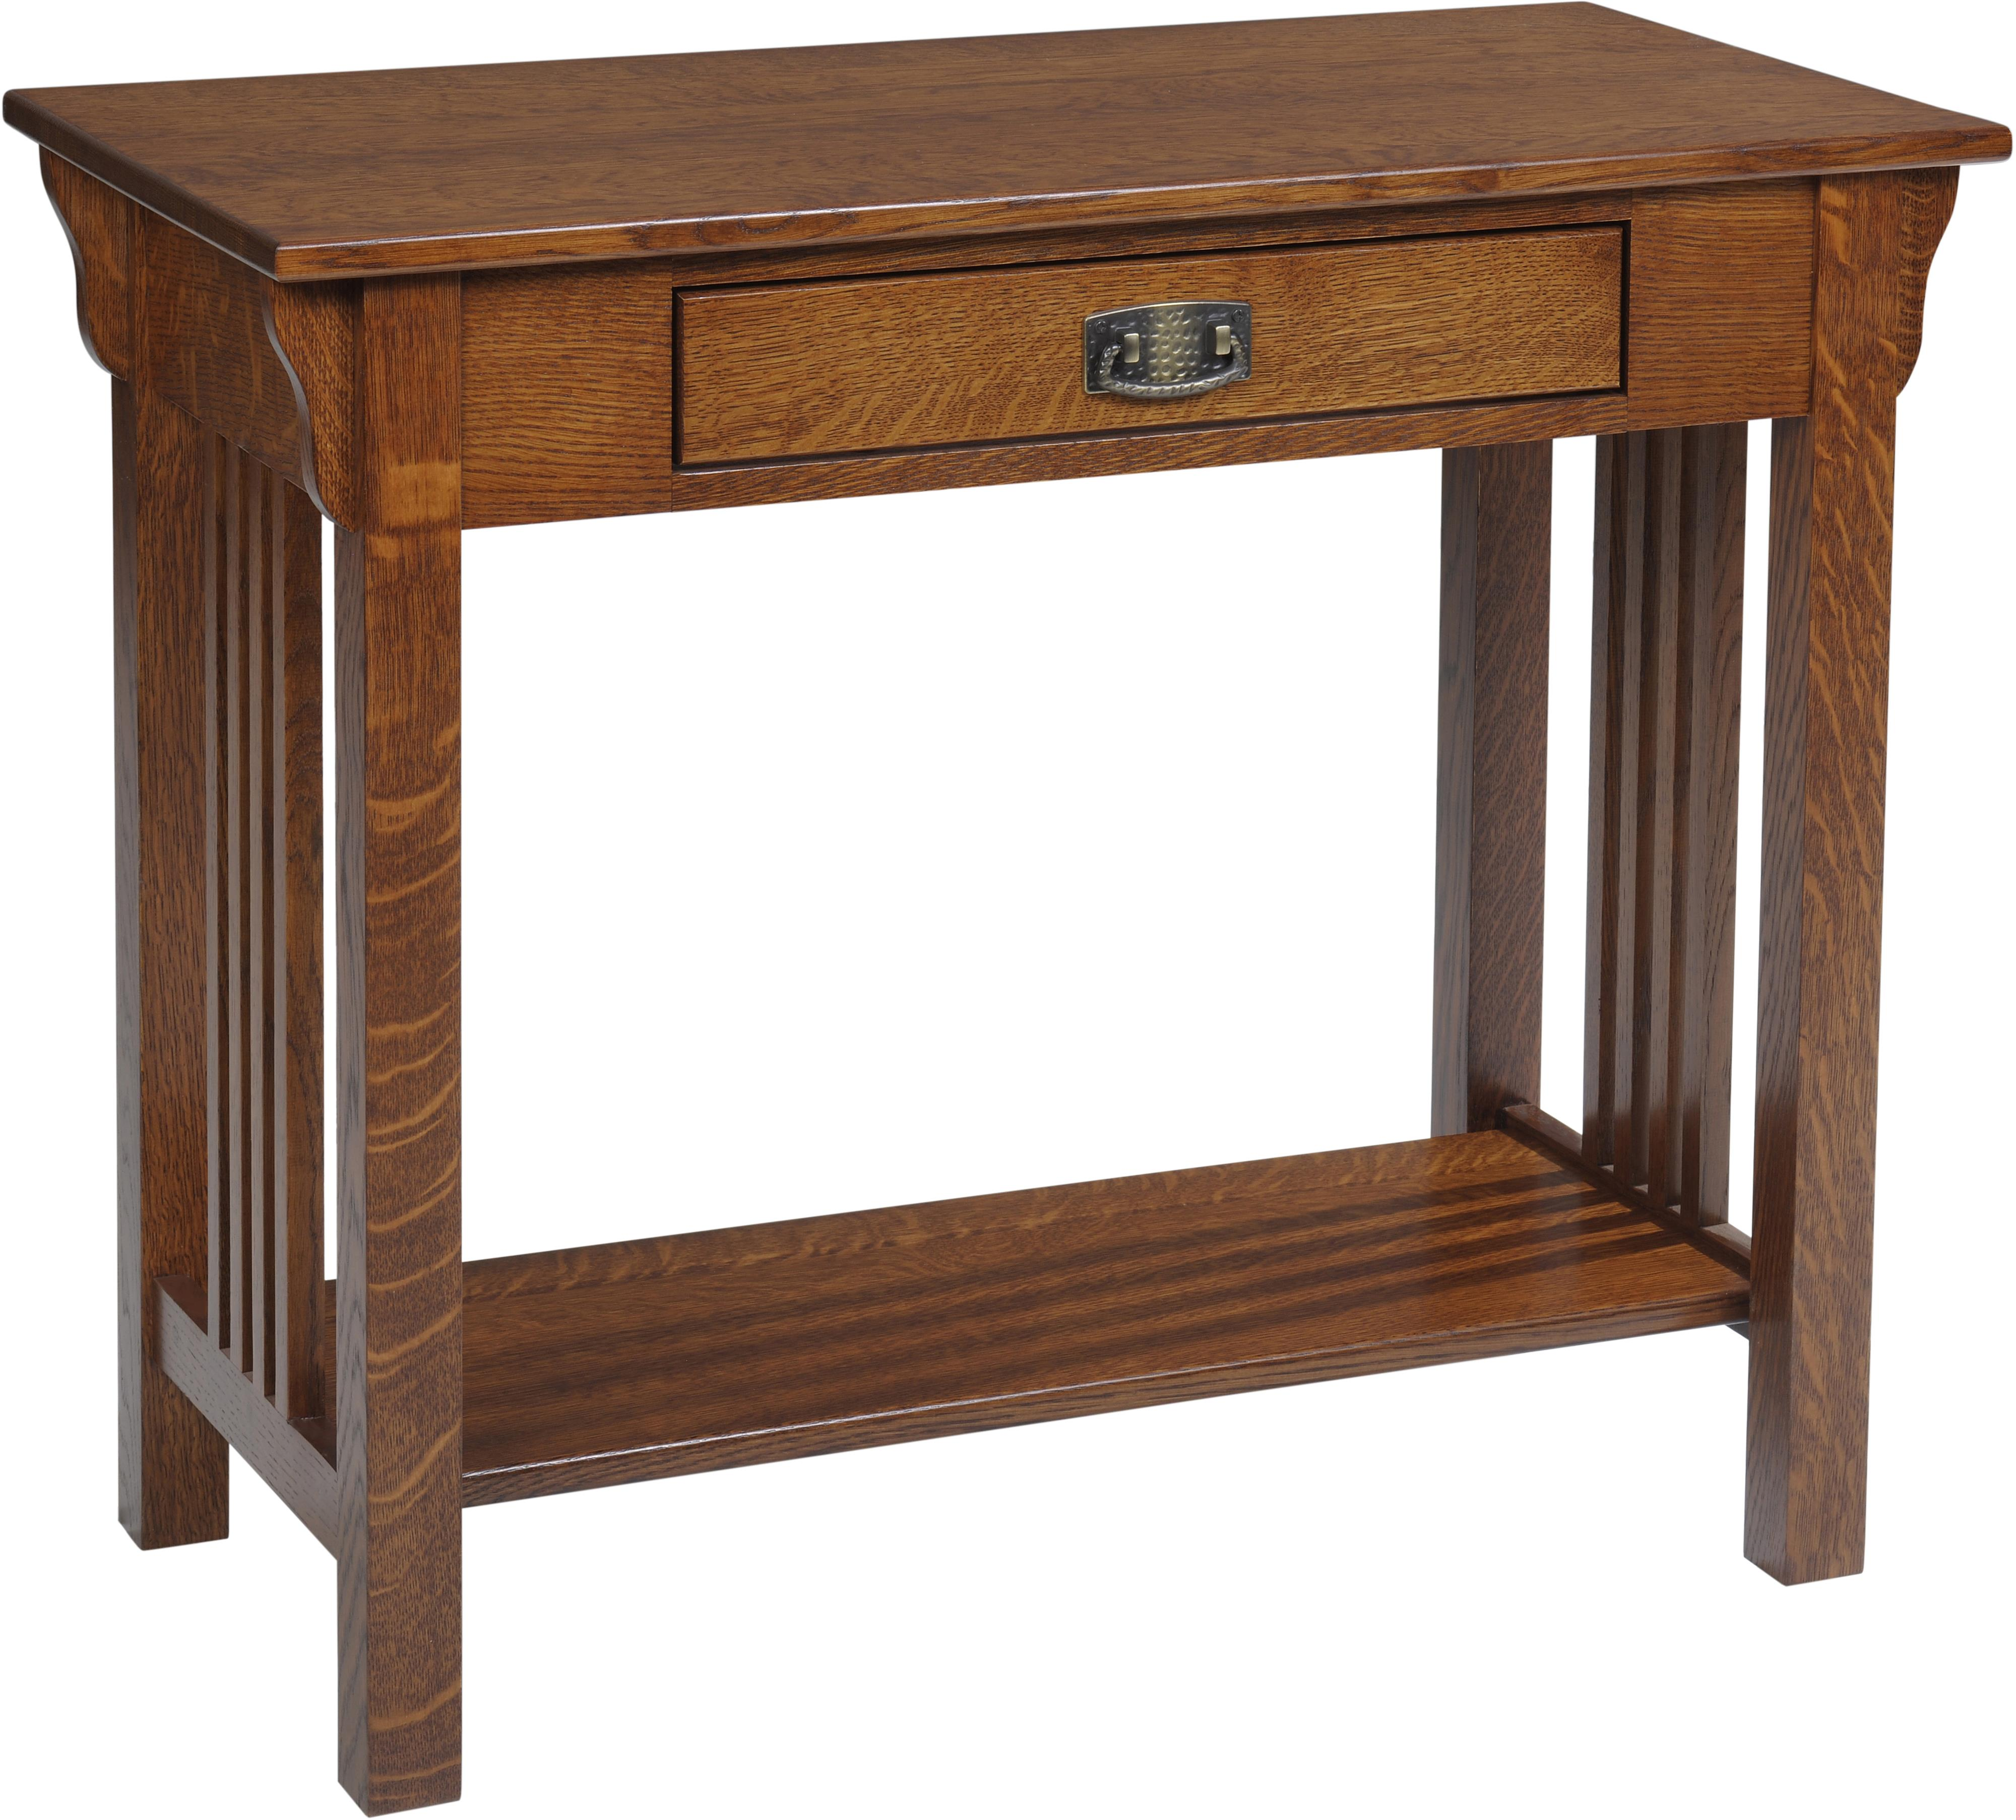 Lexington Mission Sofa Table by Y & T Woodcraft at Saugerties Furniture Mart